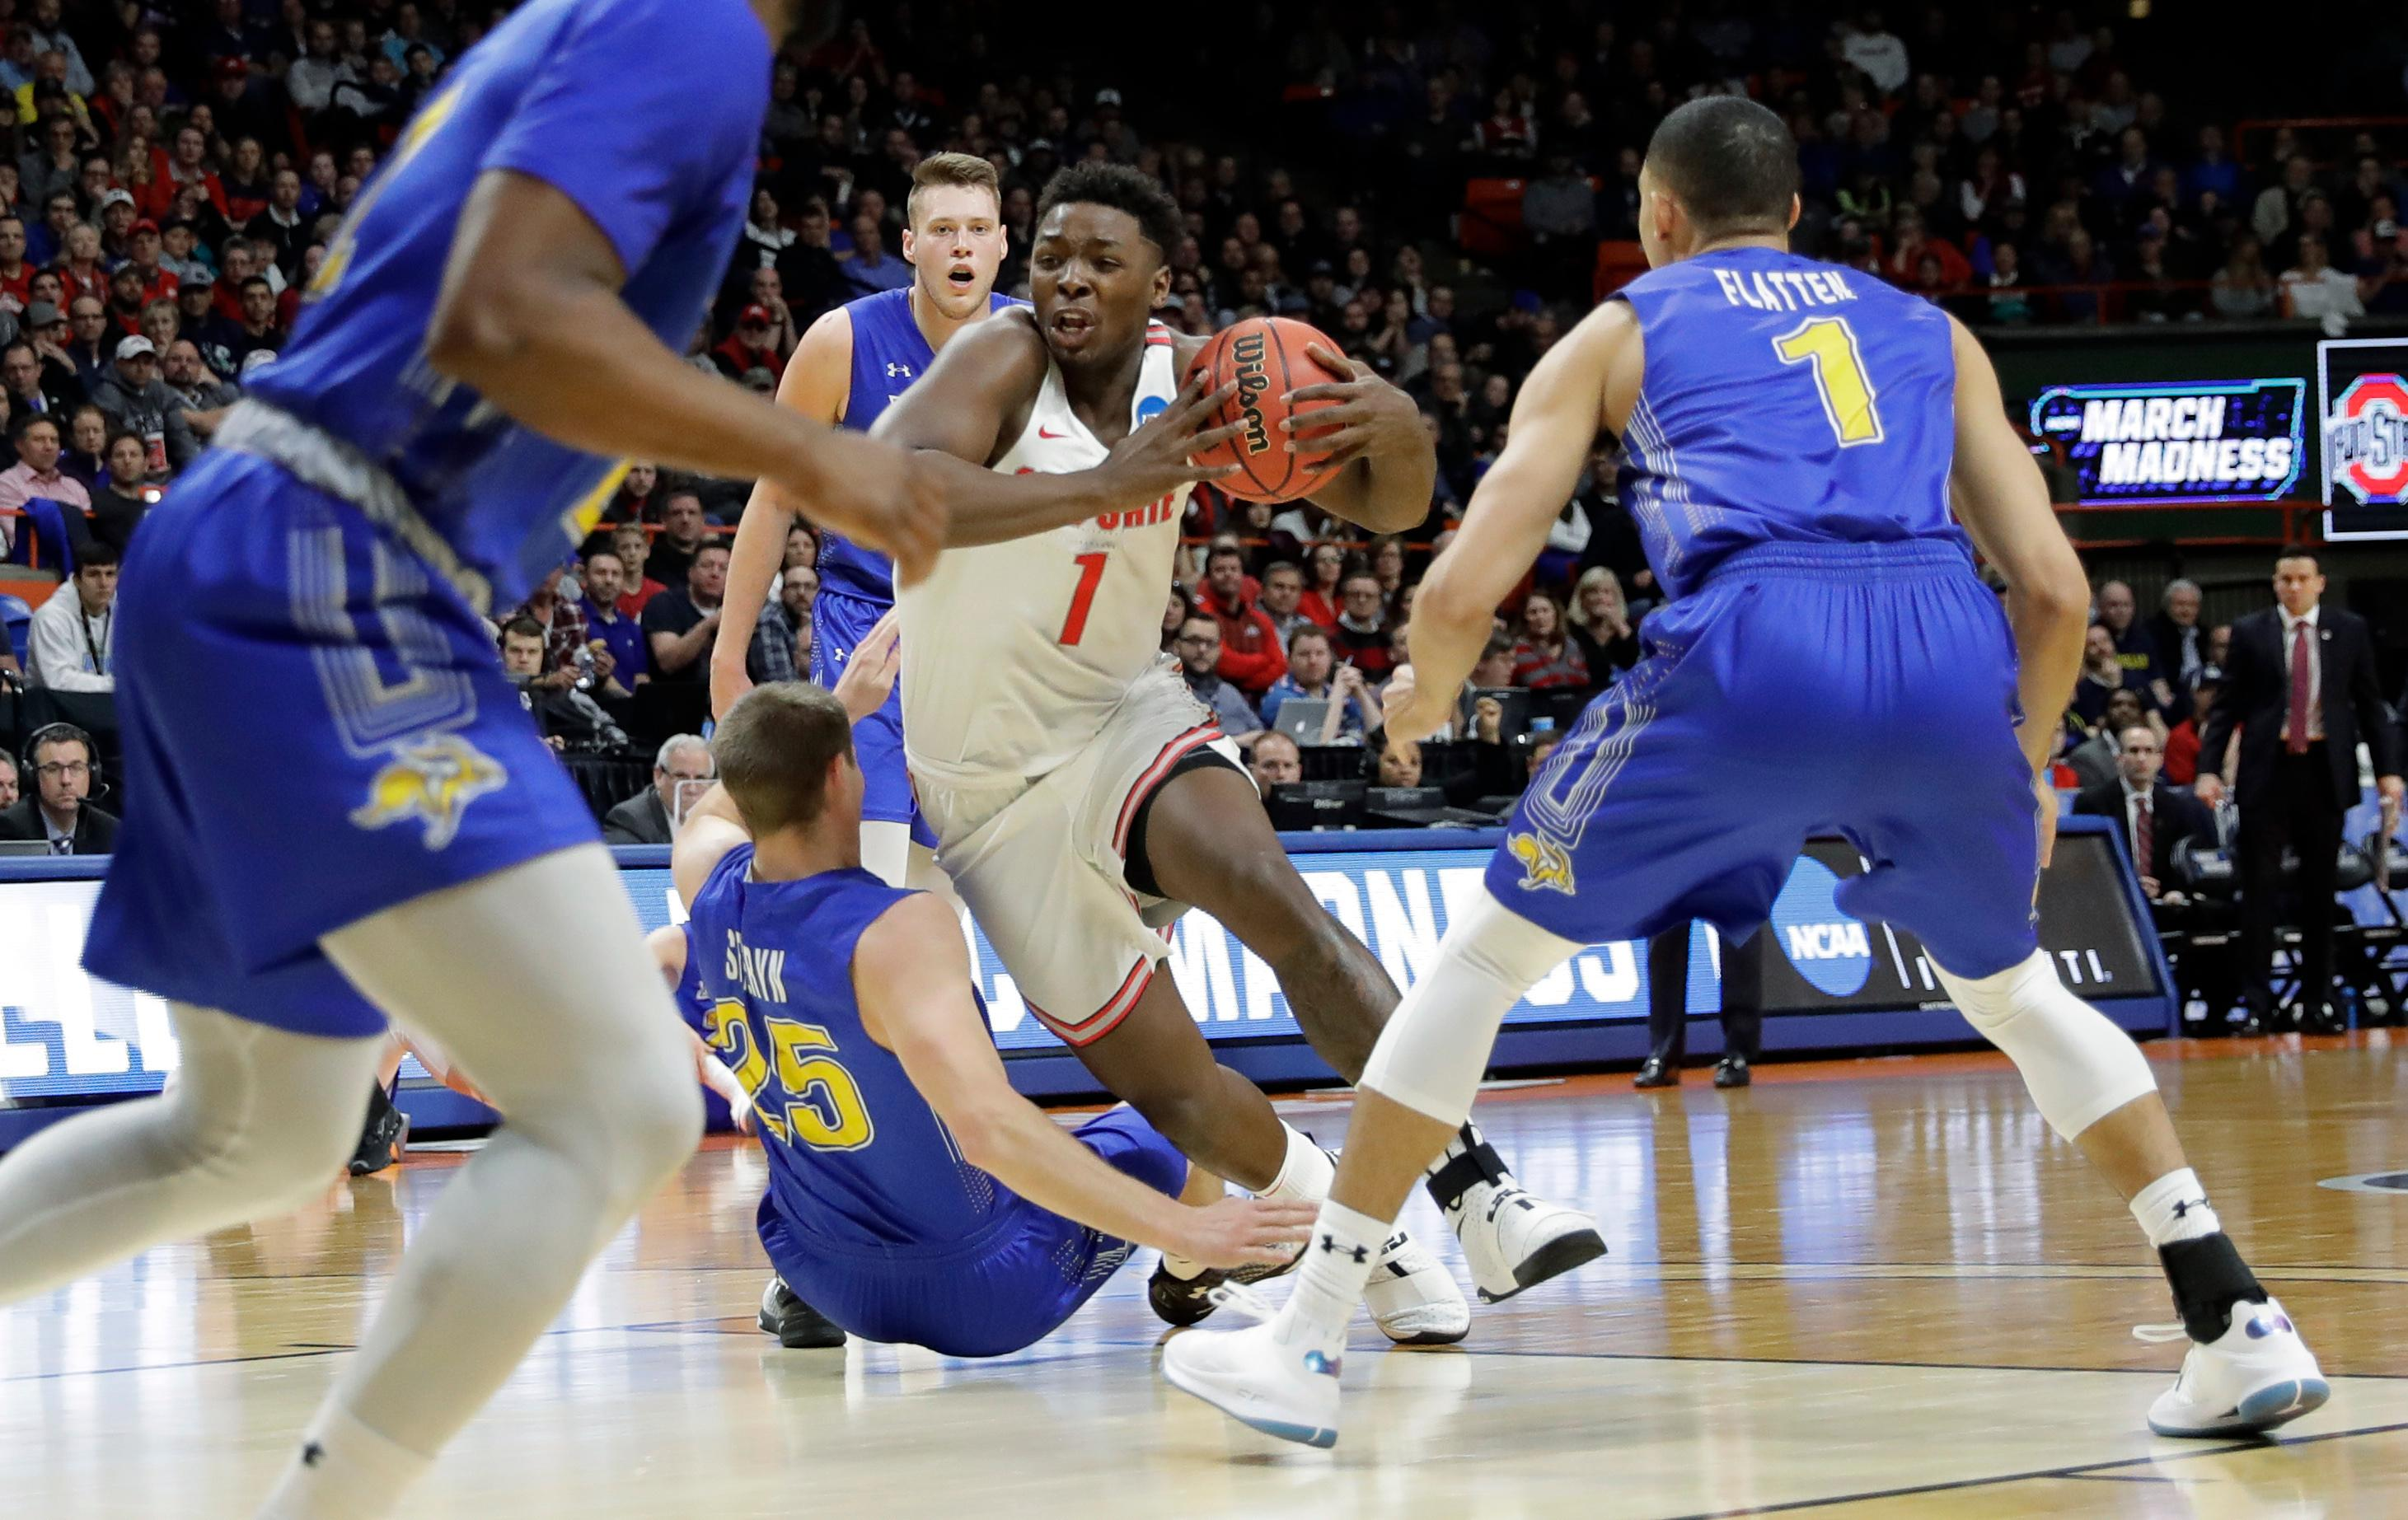 Ohio State forward Jae'Sean Tate (1) drives toward the basket as South Dakota State guard Lane Severyn (25) falls during the first half of a first-round game in the NCAA college basketball tournament, Thursday, March 15, 2018, in Boise, Idaho. (AP Photo/Otto Kitsinger)